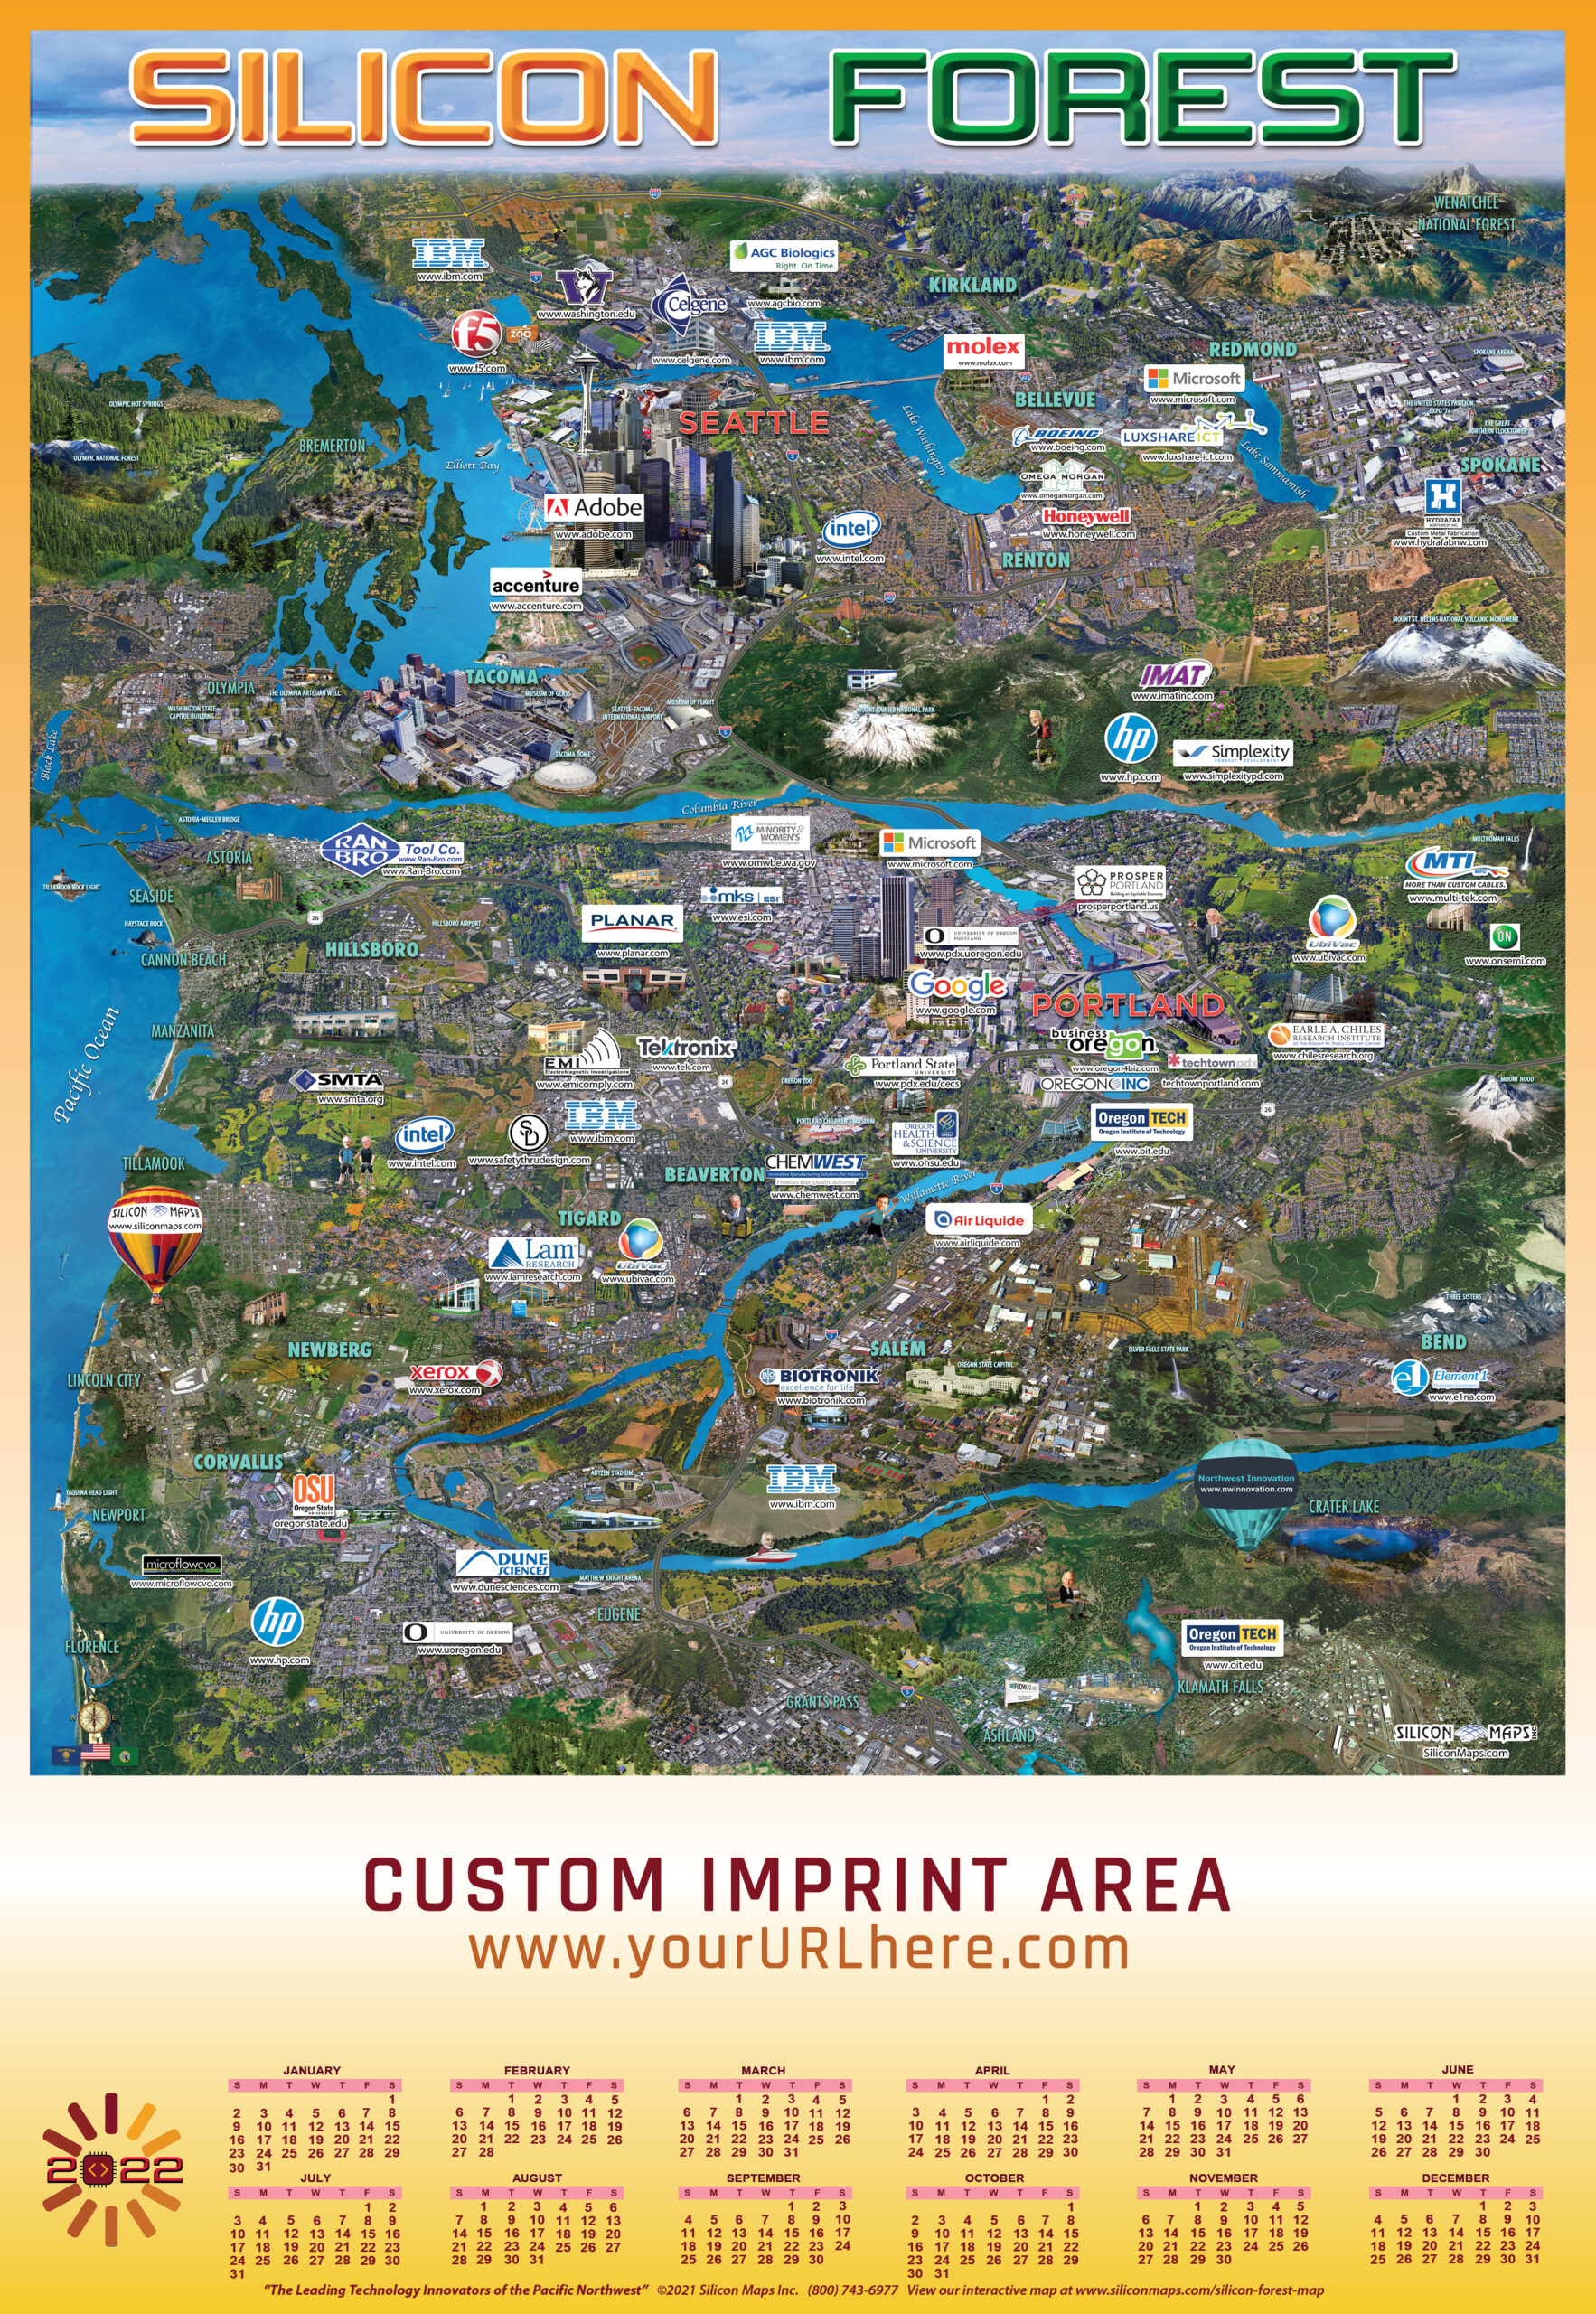 SF22, Silicon Forest, Tech, Map, Business, Technology, hardware, software, companies